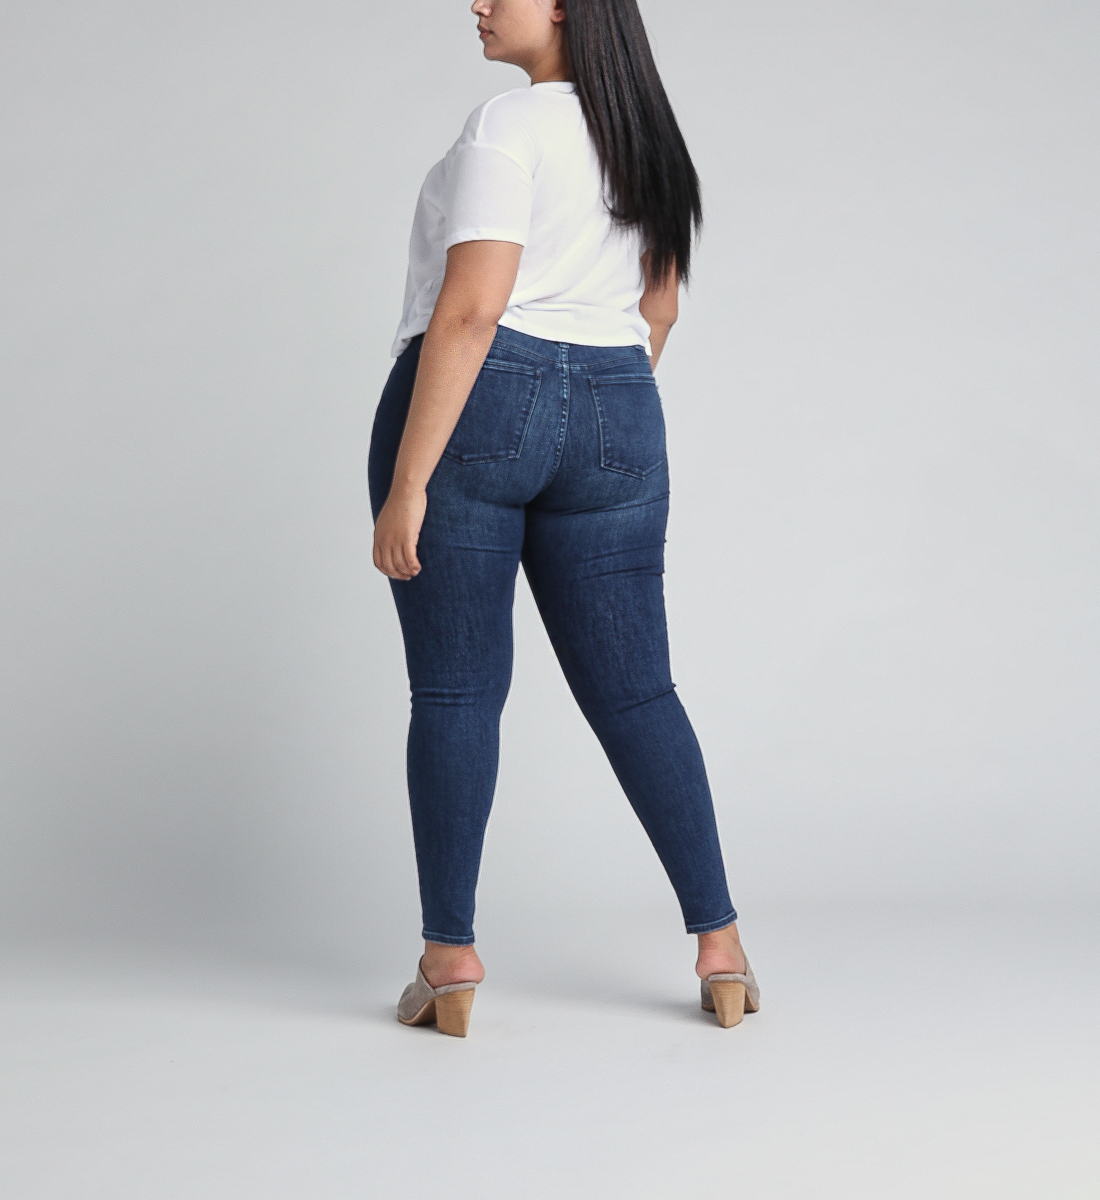 Most Wanted Mid Rise Skinny Leg Jeans Plus Size,Indigo Back